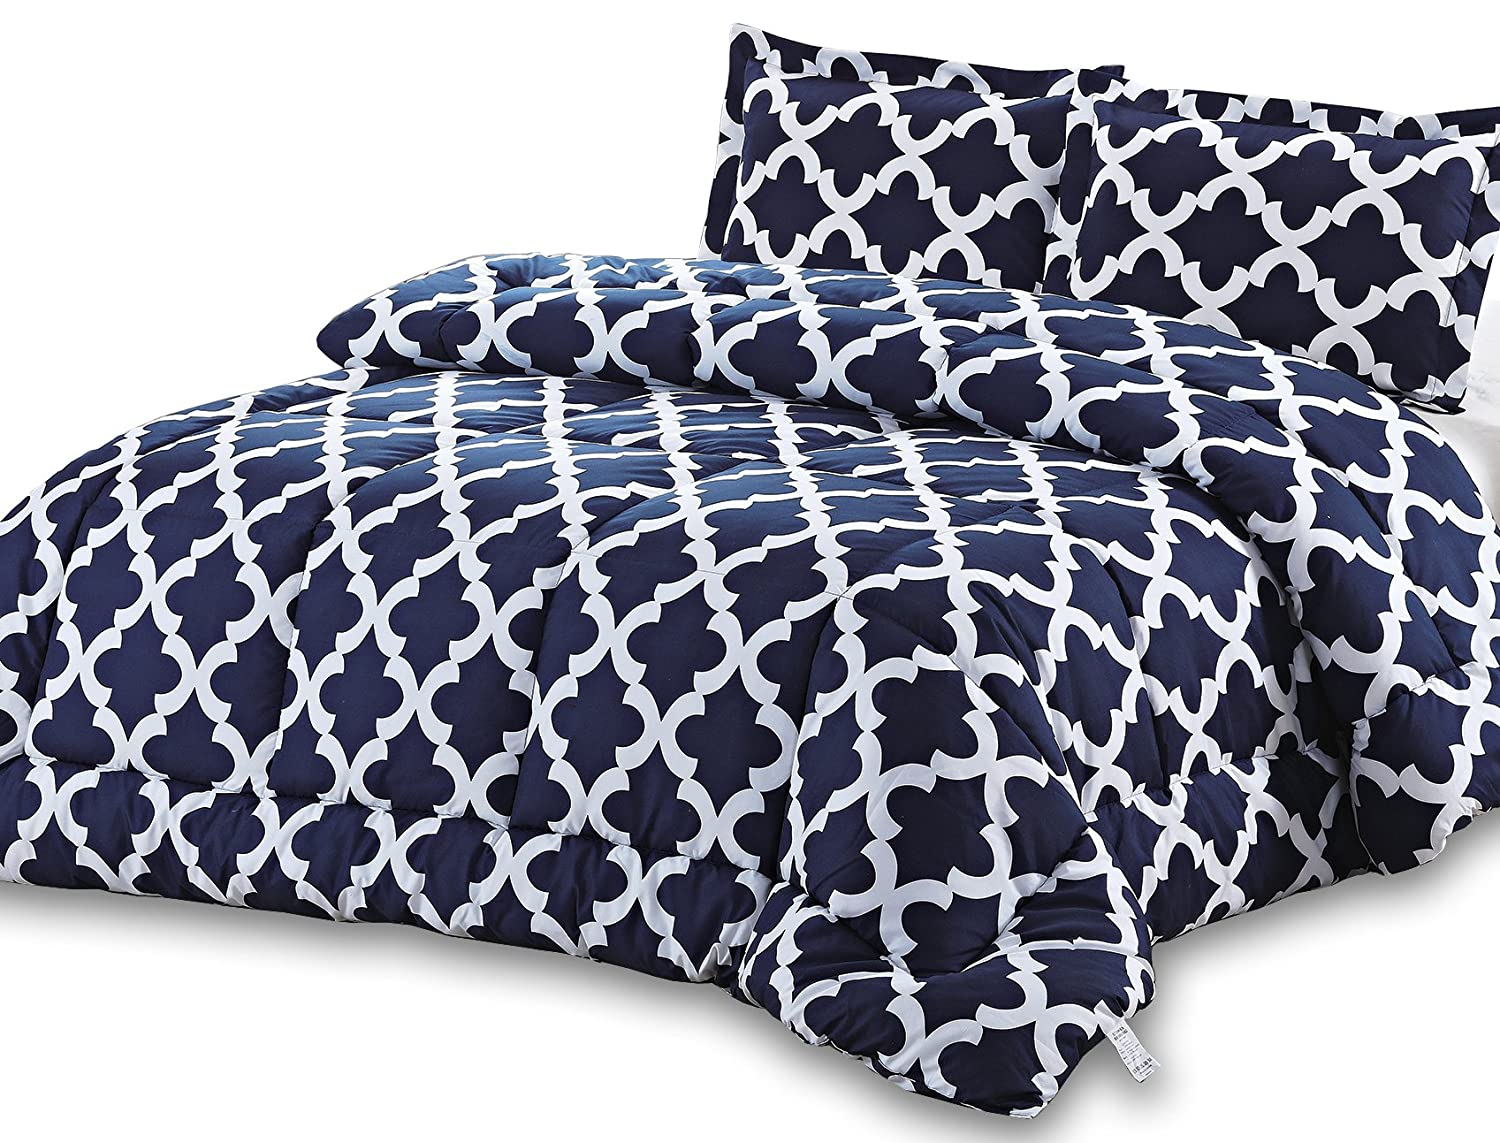 Printed Comforter Set Navy, Queen